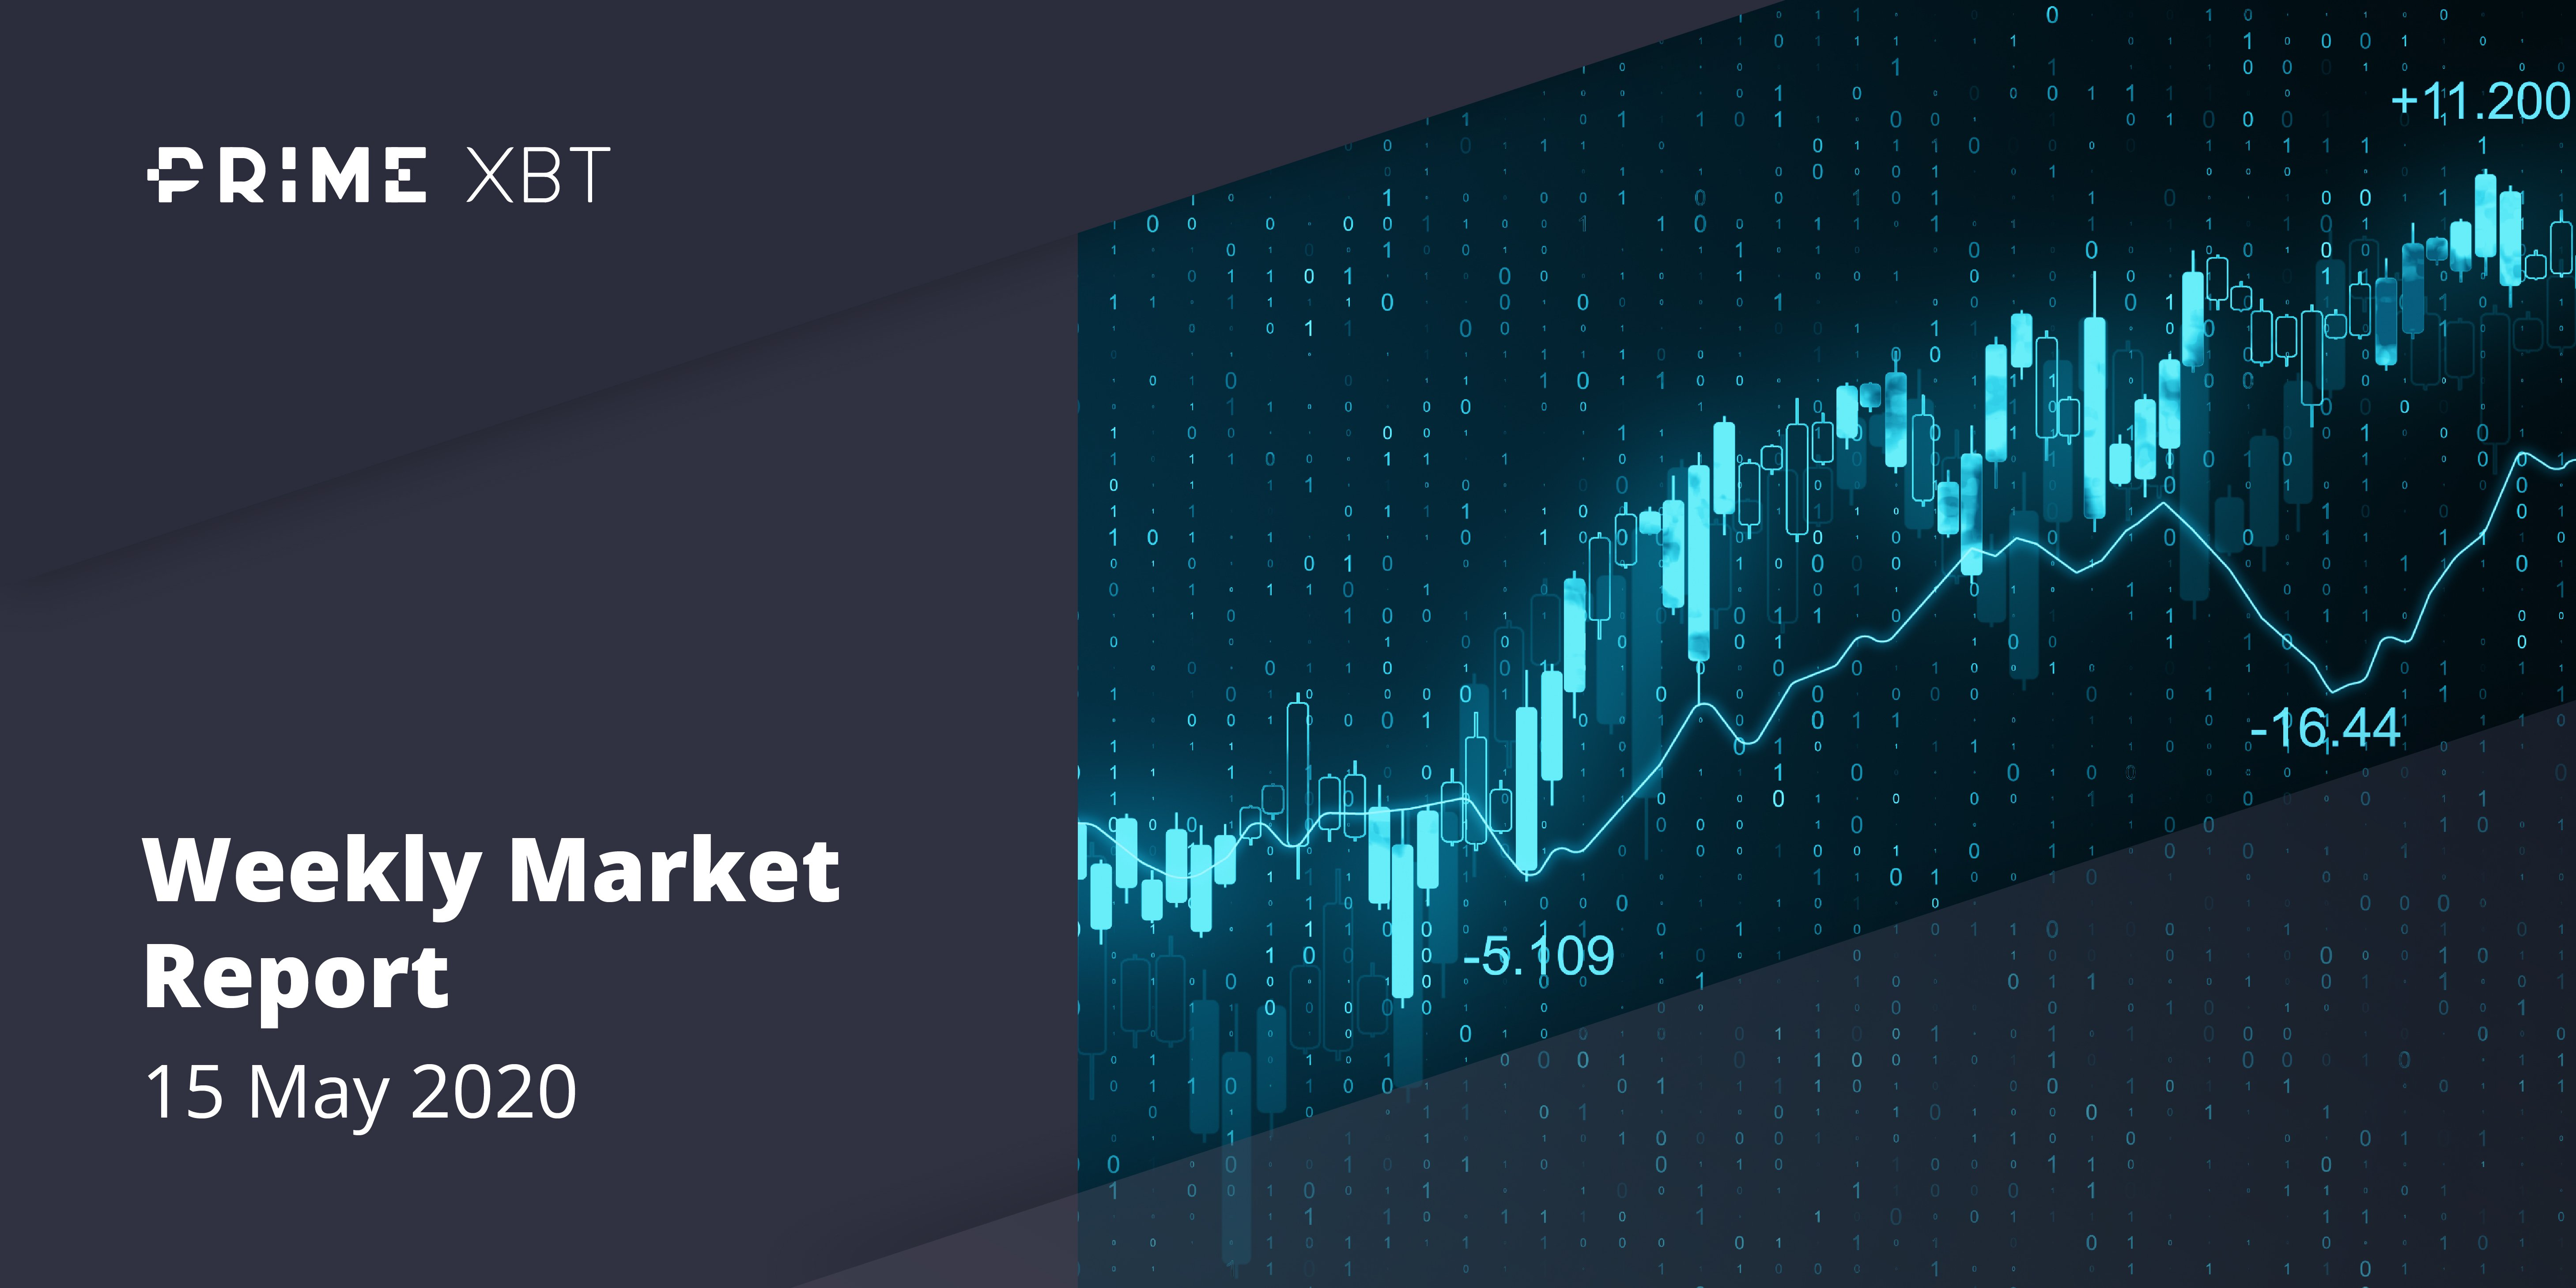 Crypto Market Report: Bitcoin's Post Halving Actions Spells Volatility But Bullish Tendencies as Decoupling From Stocks Seems Evident - 15.05.20